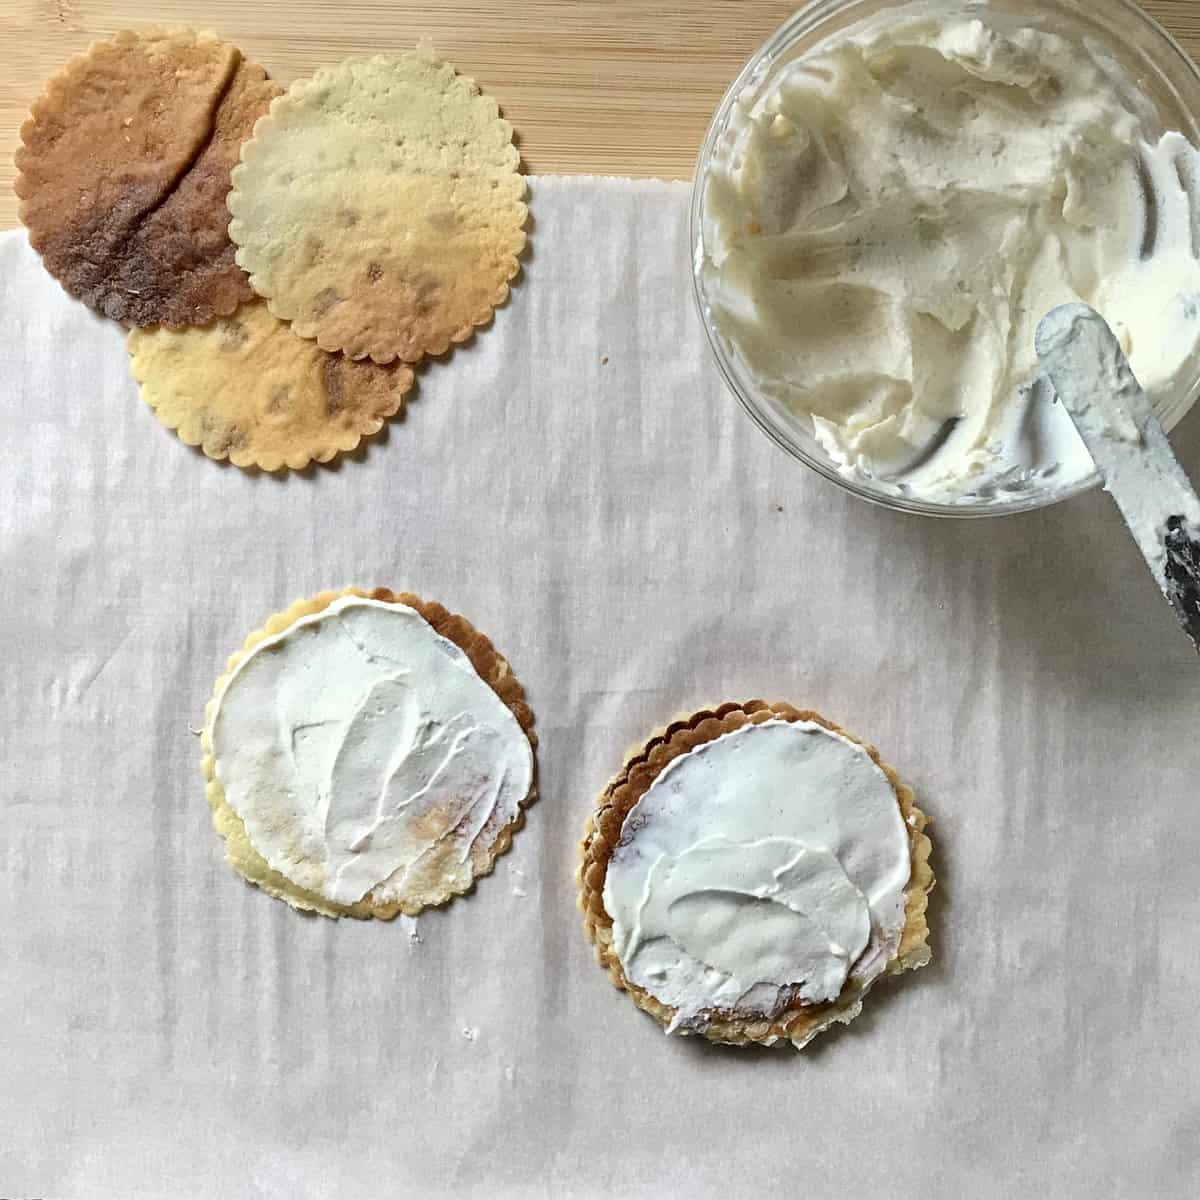 Crepes and ricotta filling.